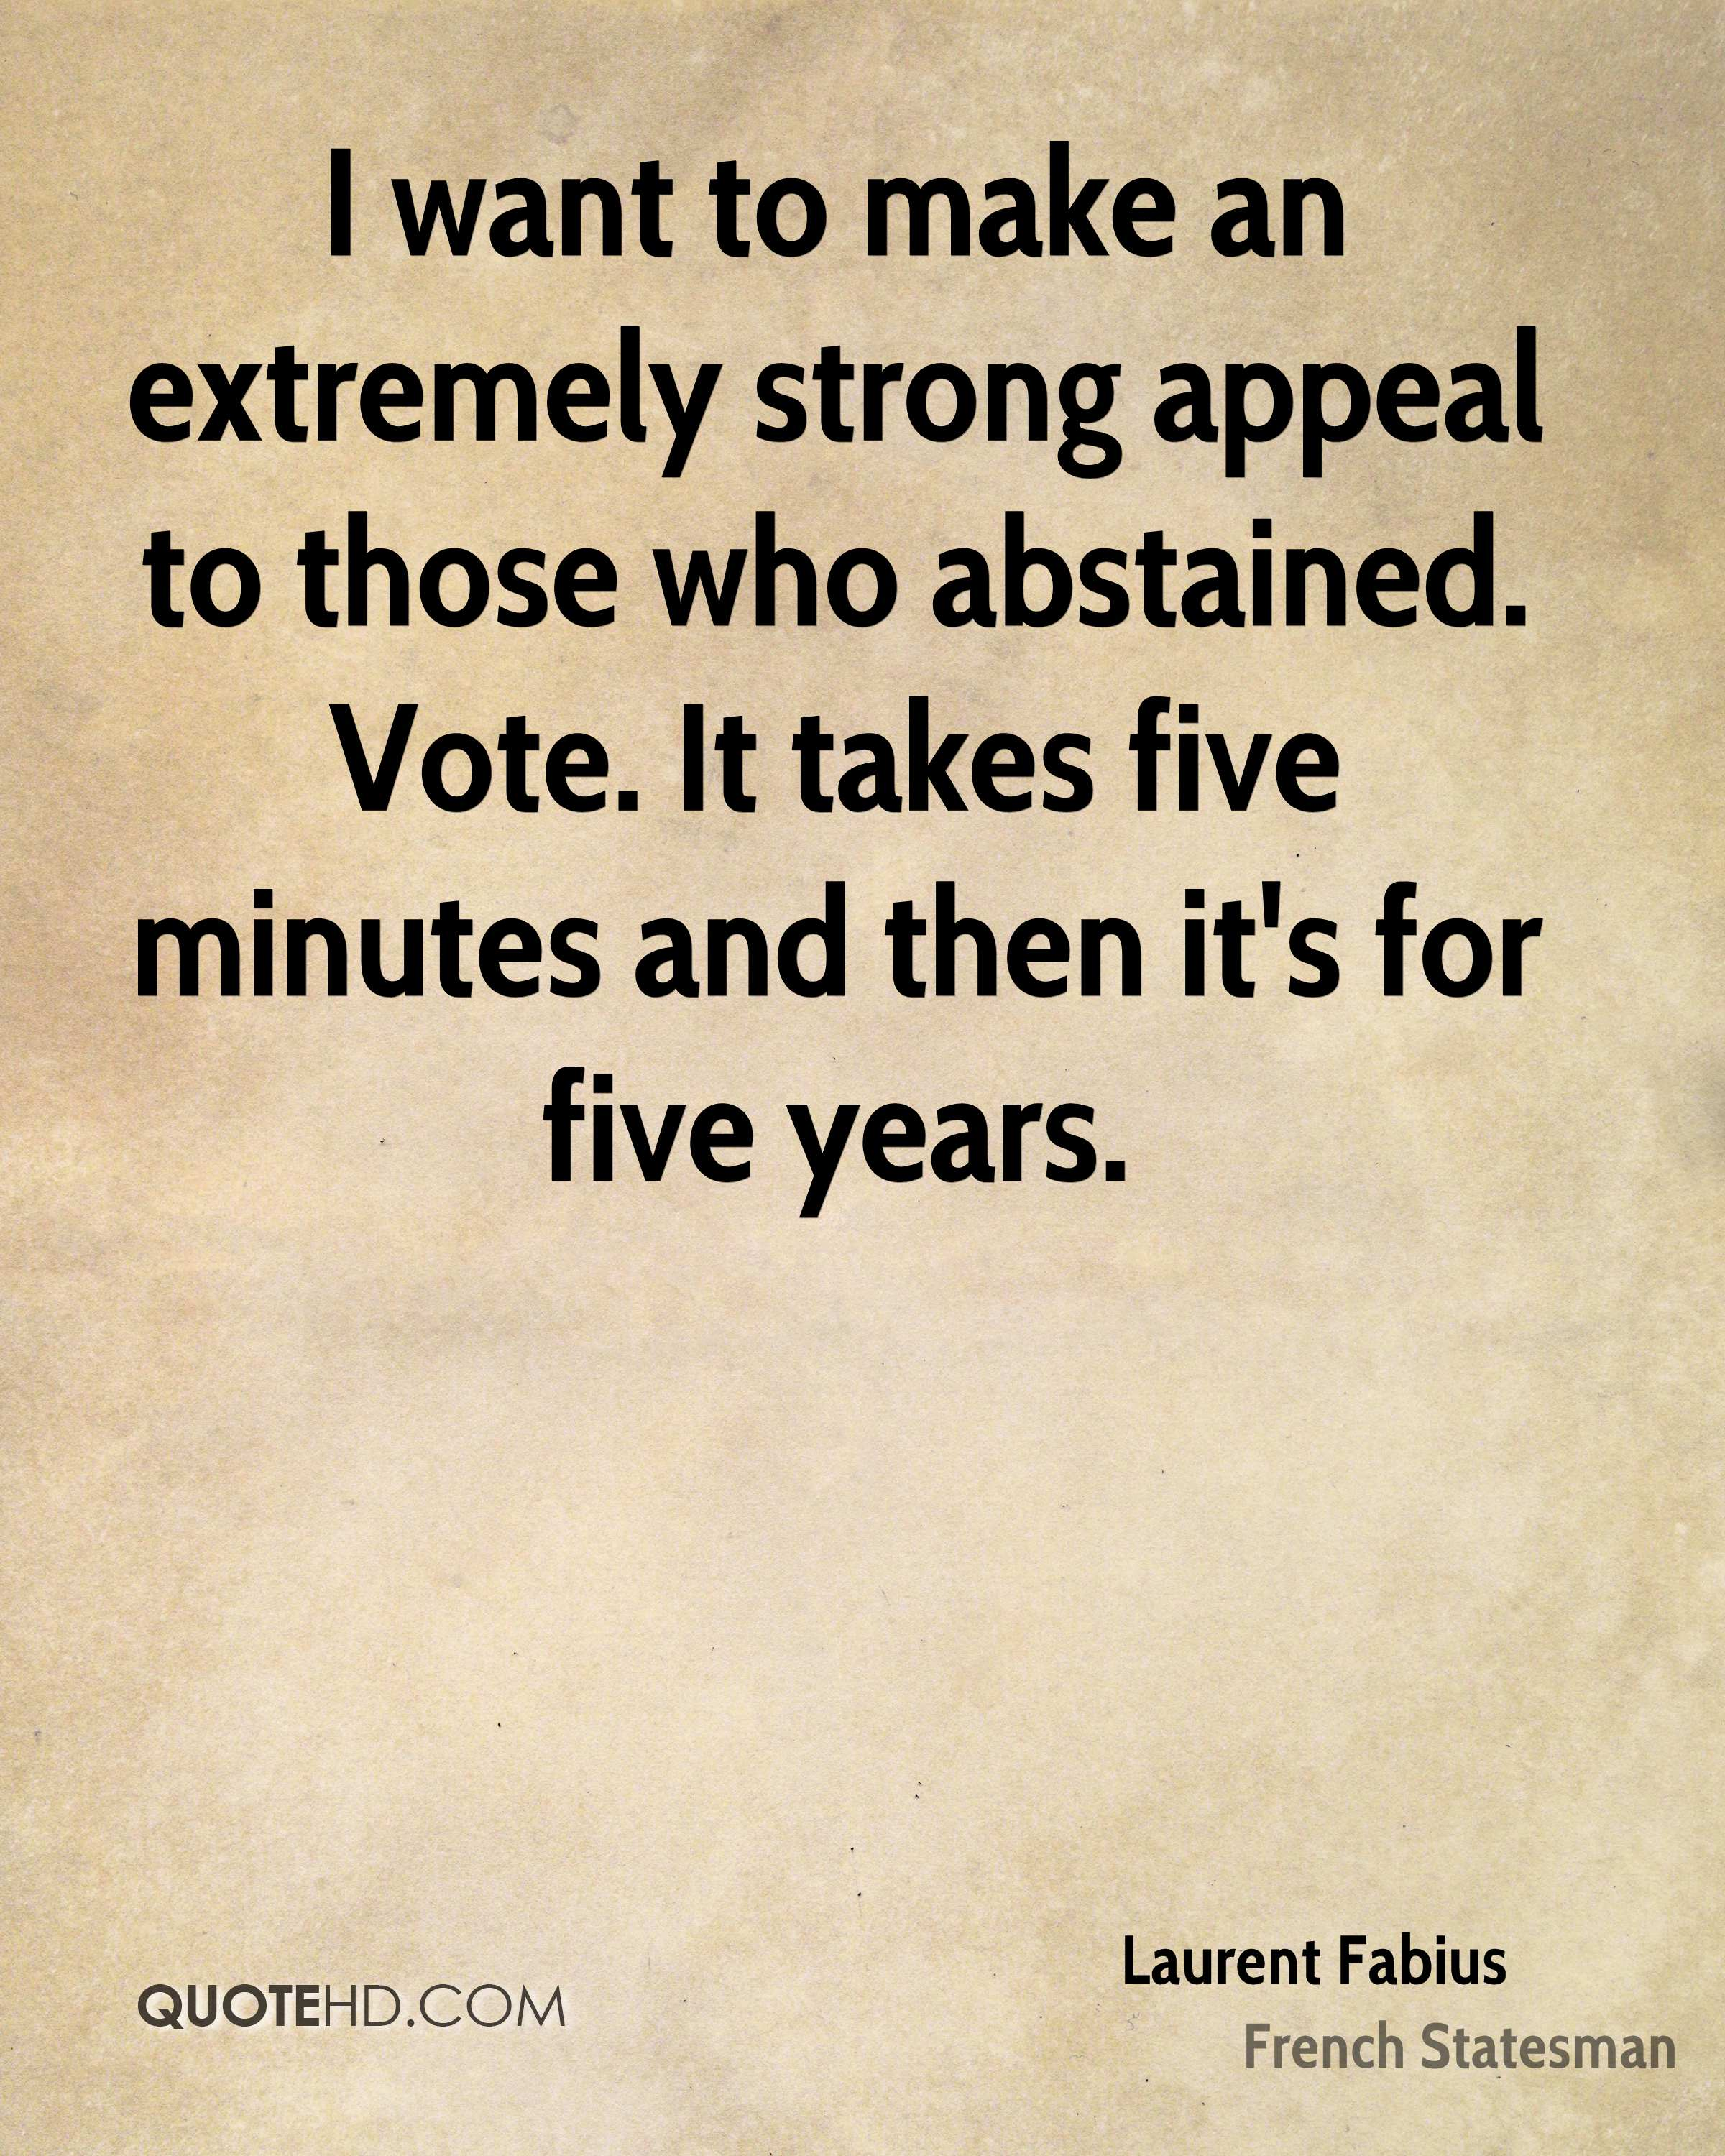 laurent fabius quotes quotehd i want to make an extremely strong appeal to those who abstained vote it